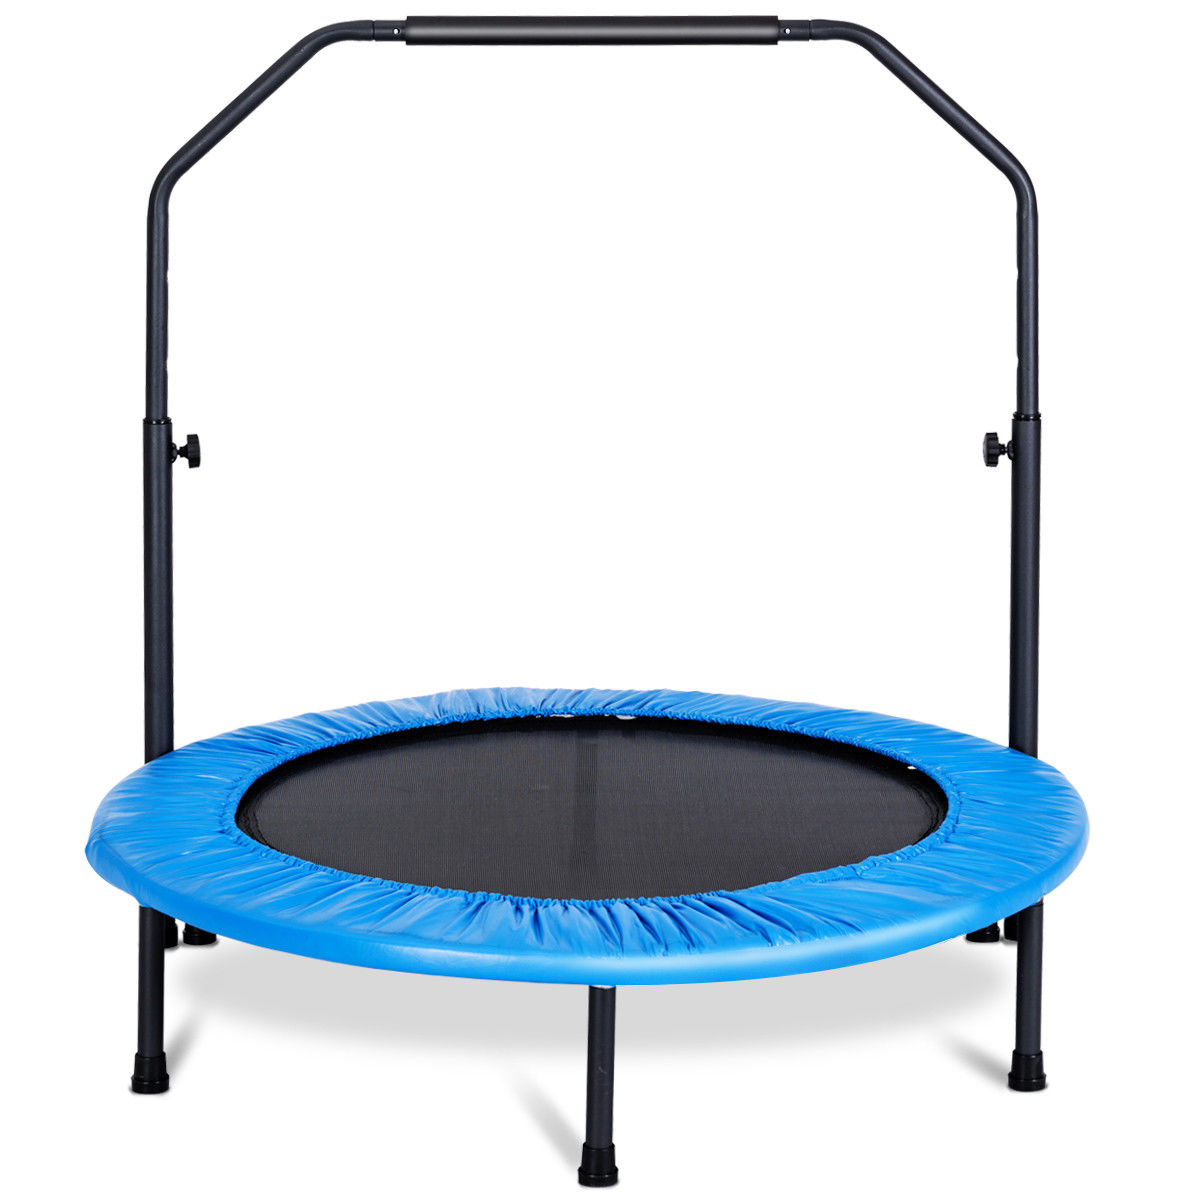 Gymax Mini Rebounder Trampoline With Adjustable Hand Rail Bouncing Workout Exercise